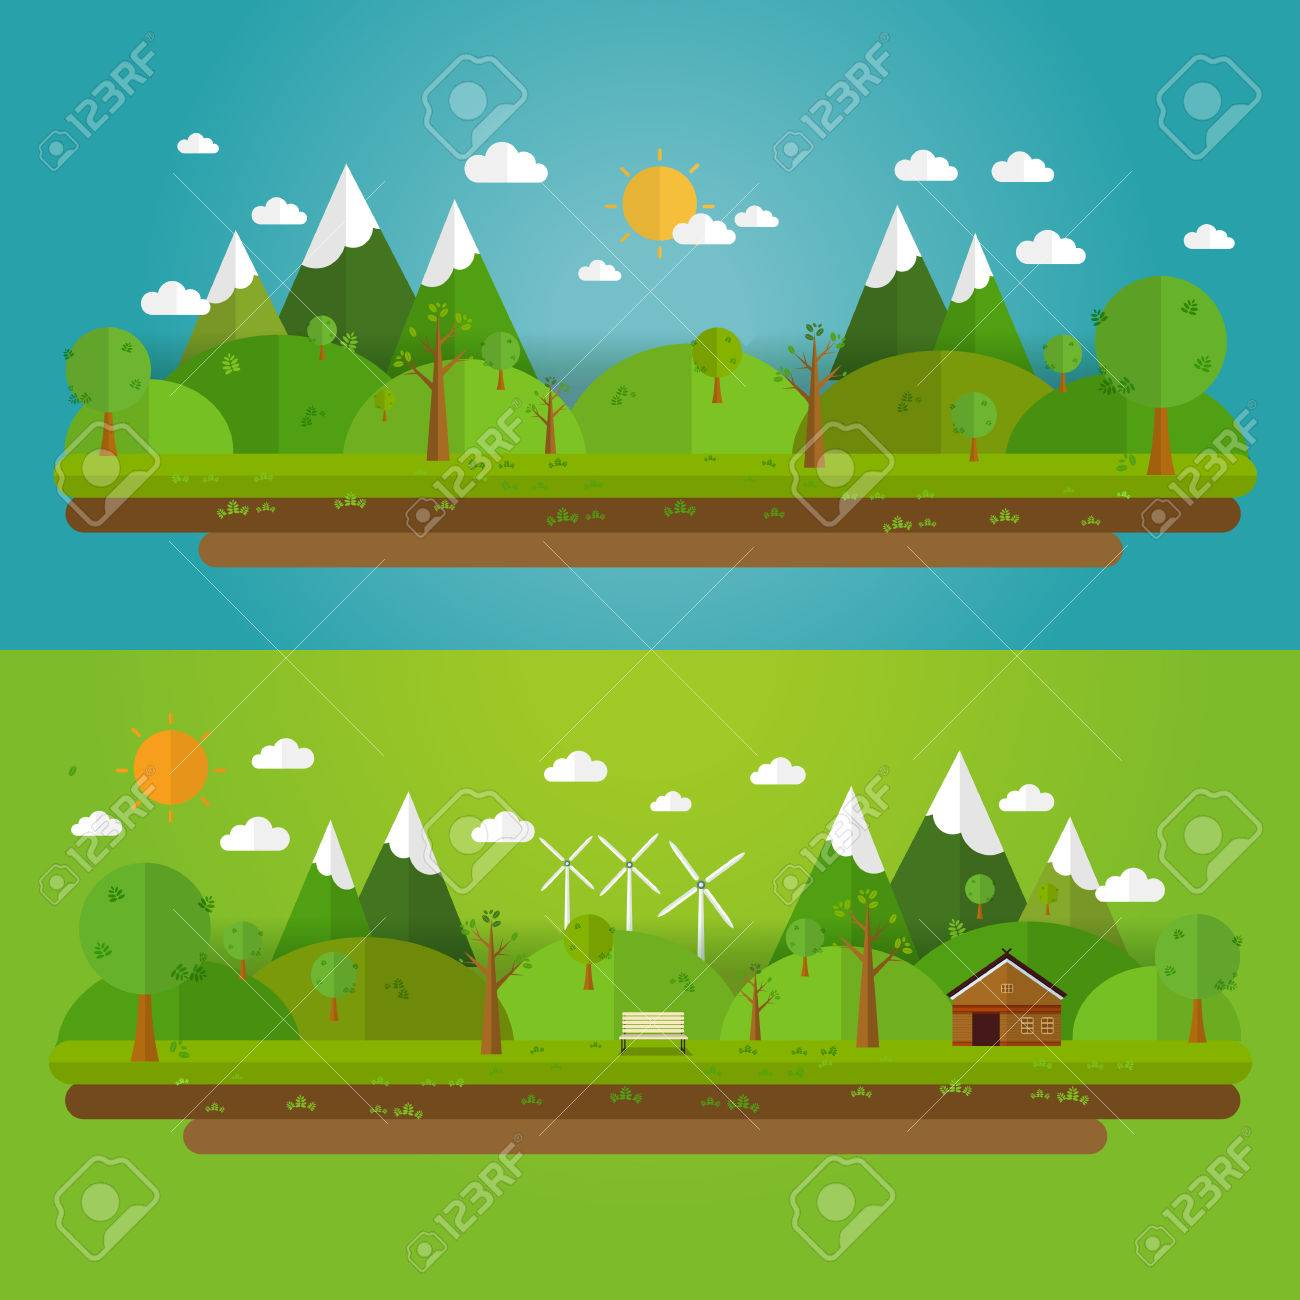 Natural landscape in the flat style. a beautiful park.Environmentally friendly natural landscape. - 53032169